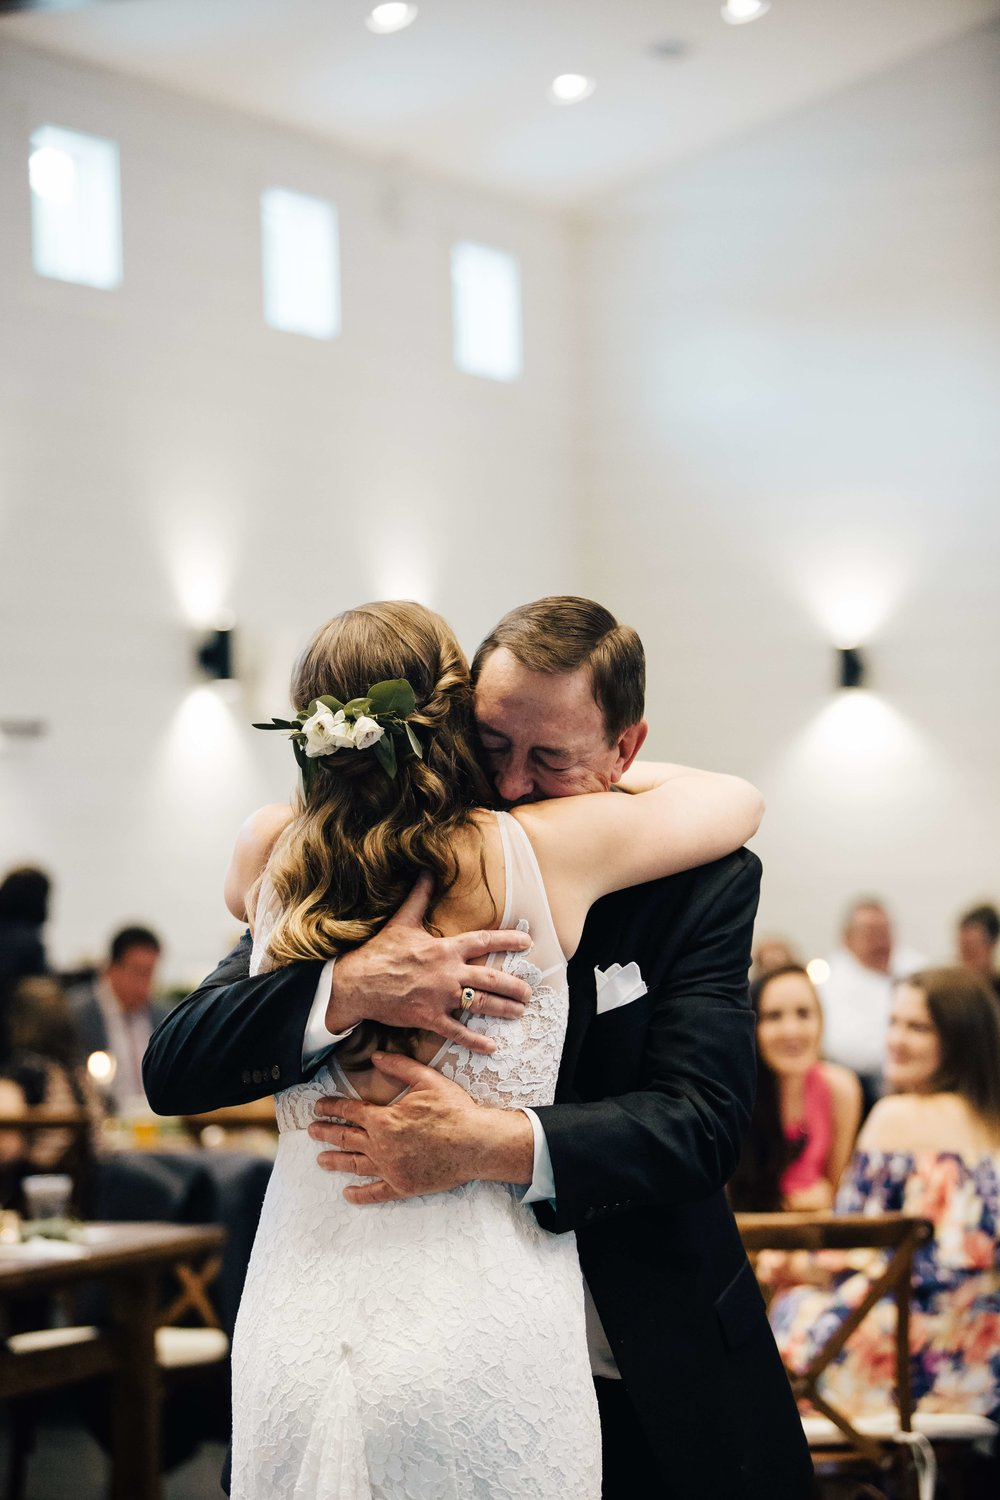 Father of the Bride and Bride hugging just after their Father Daughter Dance at Chestnut Ridge in Asheville, North Carolina, Music played by Benjamin T Warner DJ & Musician, Photography by Amanda Sutton Photography